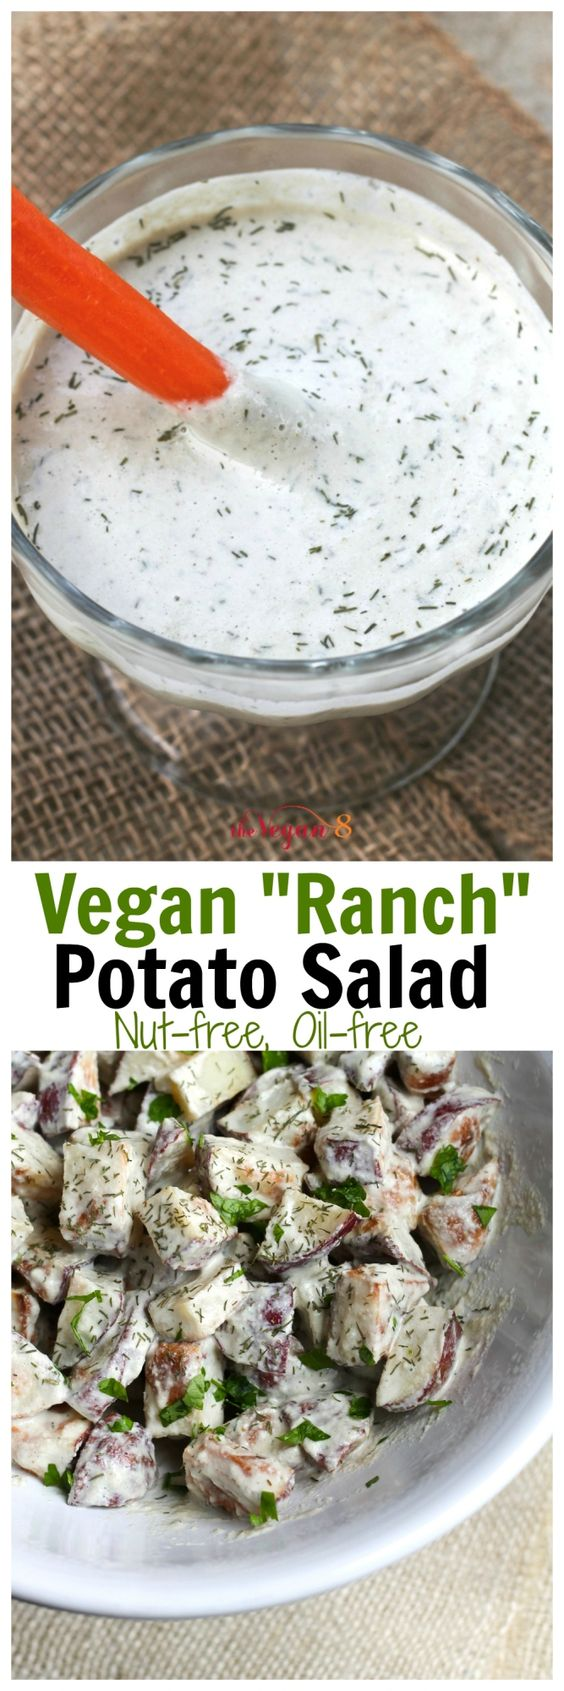 "Vegan ""Ranch"" Potato Salad that is oil-free, soy-free, gluten-free and only 8 ingredients! (+salt&water) and nut-free! http://TheVegan8.com"